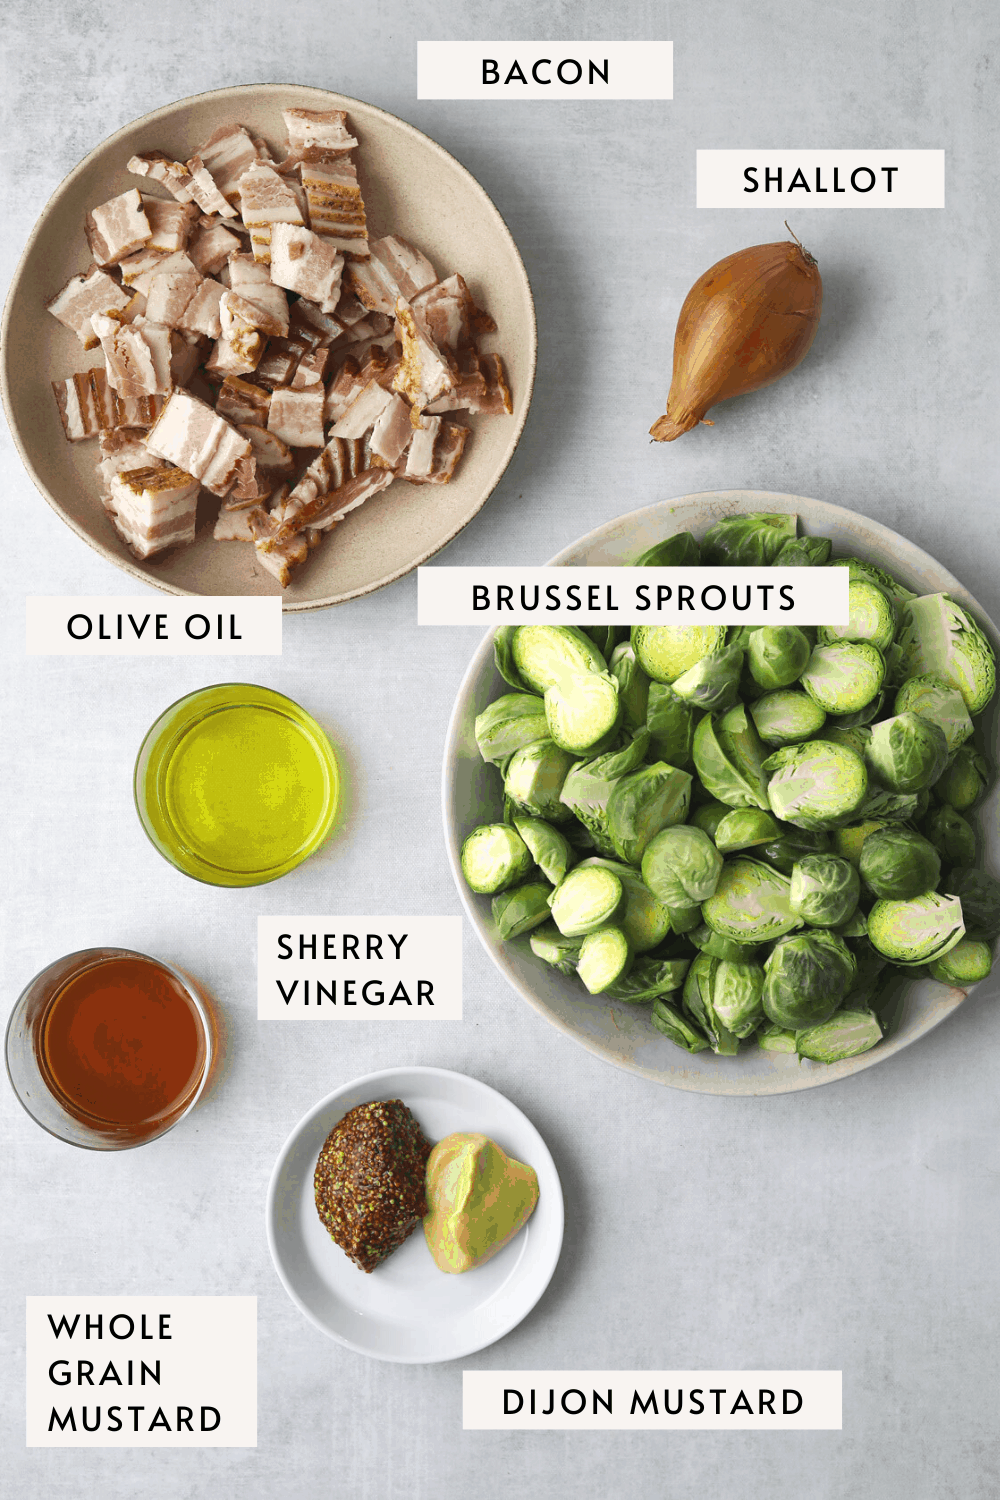 recipe ingredients: a bowl of Brussel sprouts, dijon mustard, whole grain mustard, bacon, vinegar and olive oil